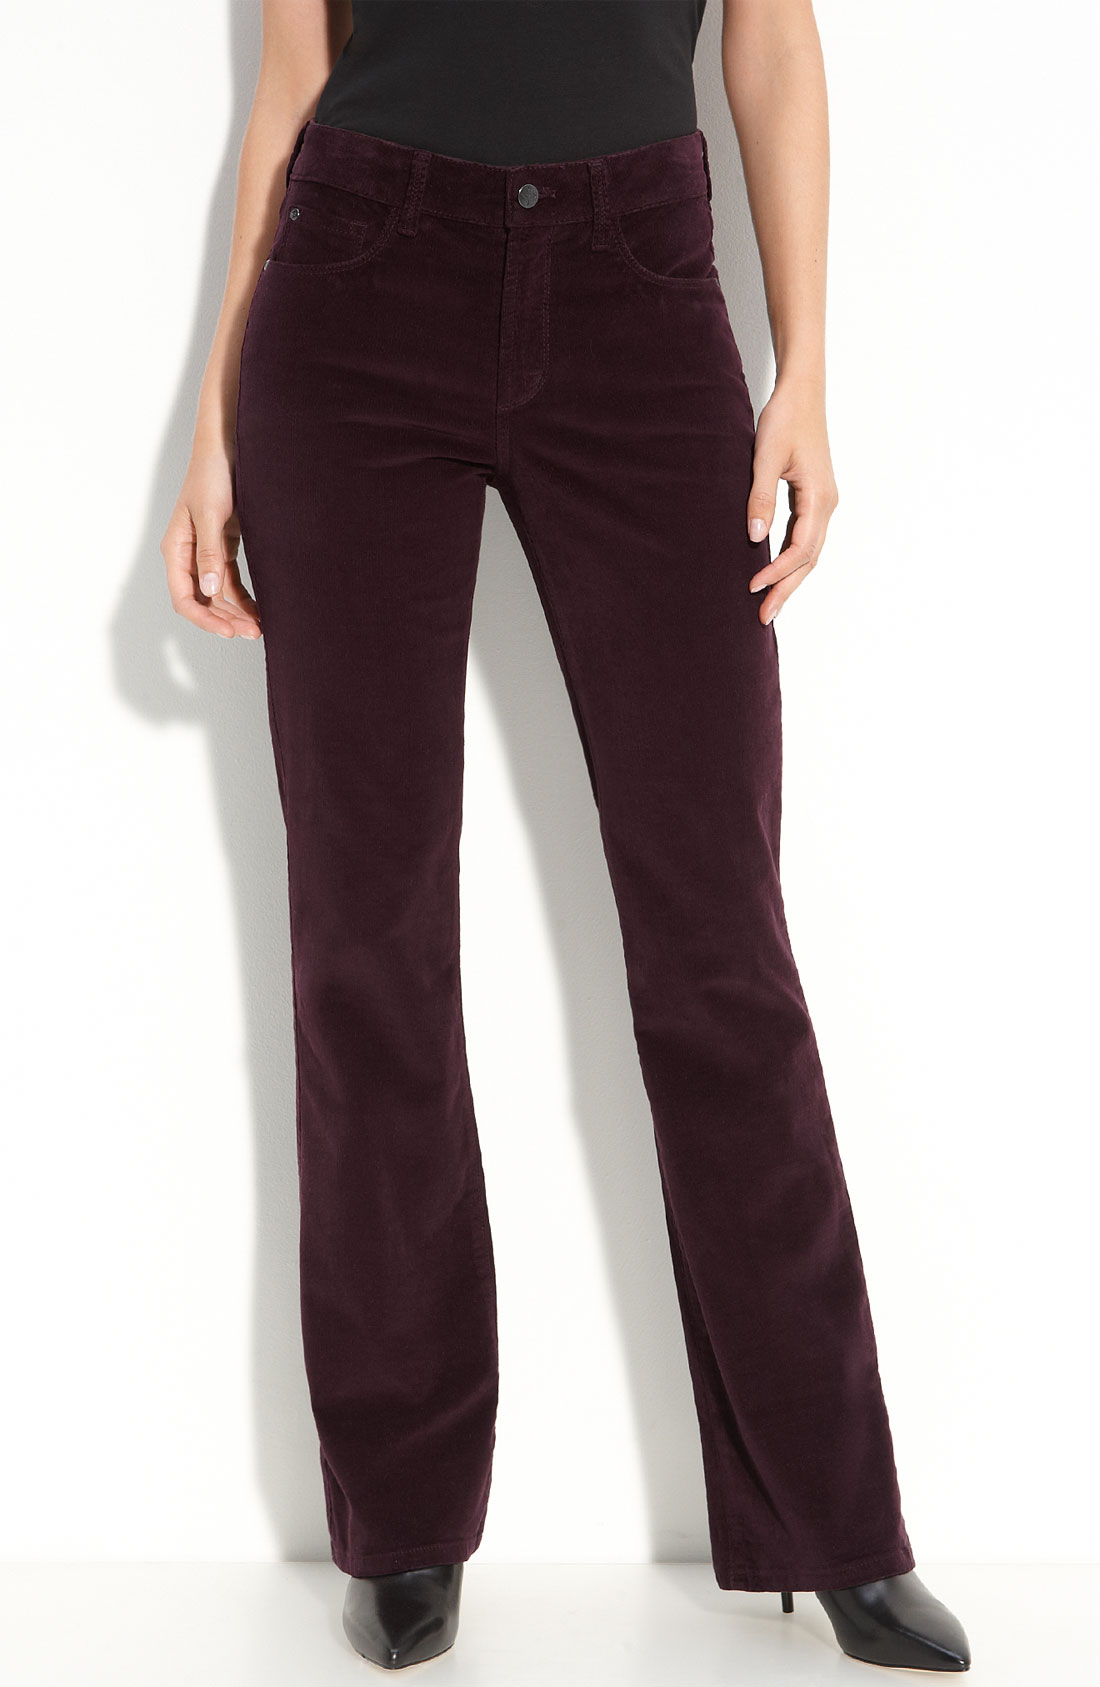 Free shipping BOTH ways on levis womens boot cut corduroy, from our vast selection of styles. Fast delivery, and 24/7/ real-person service with a smile. Click or call